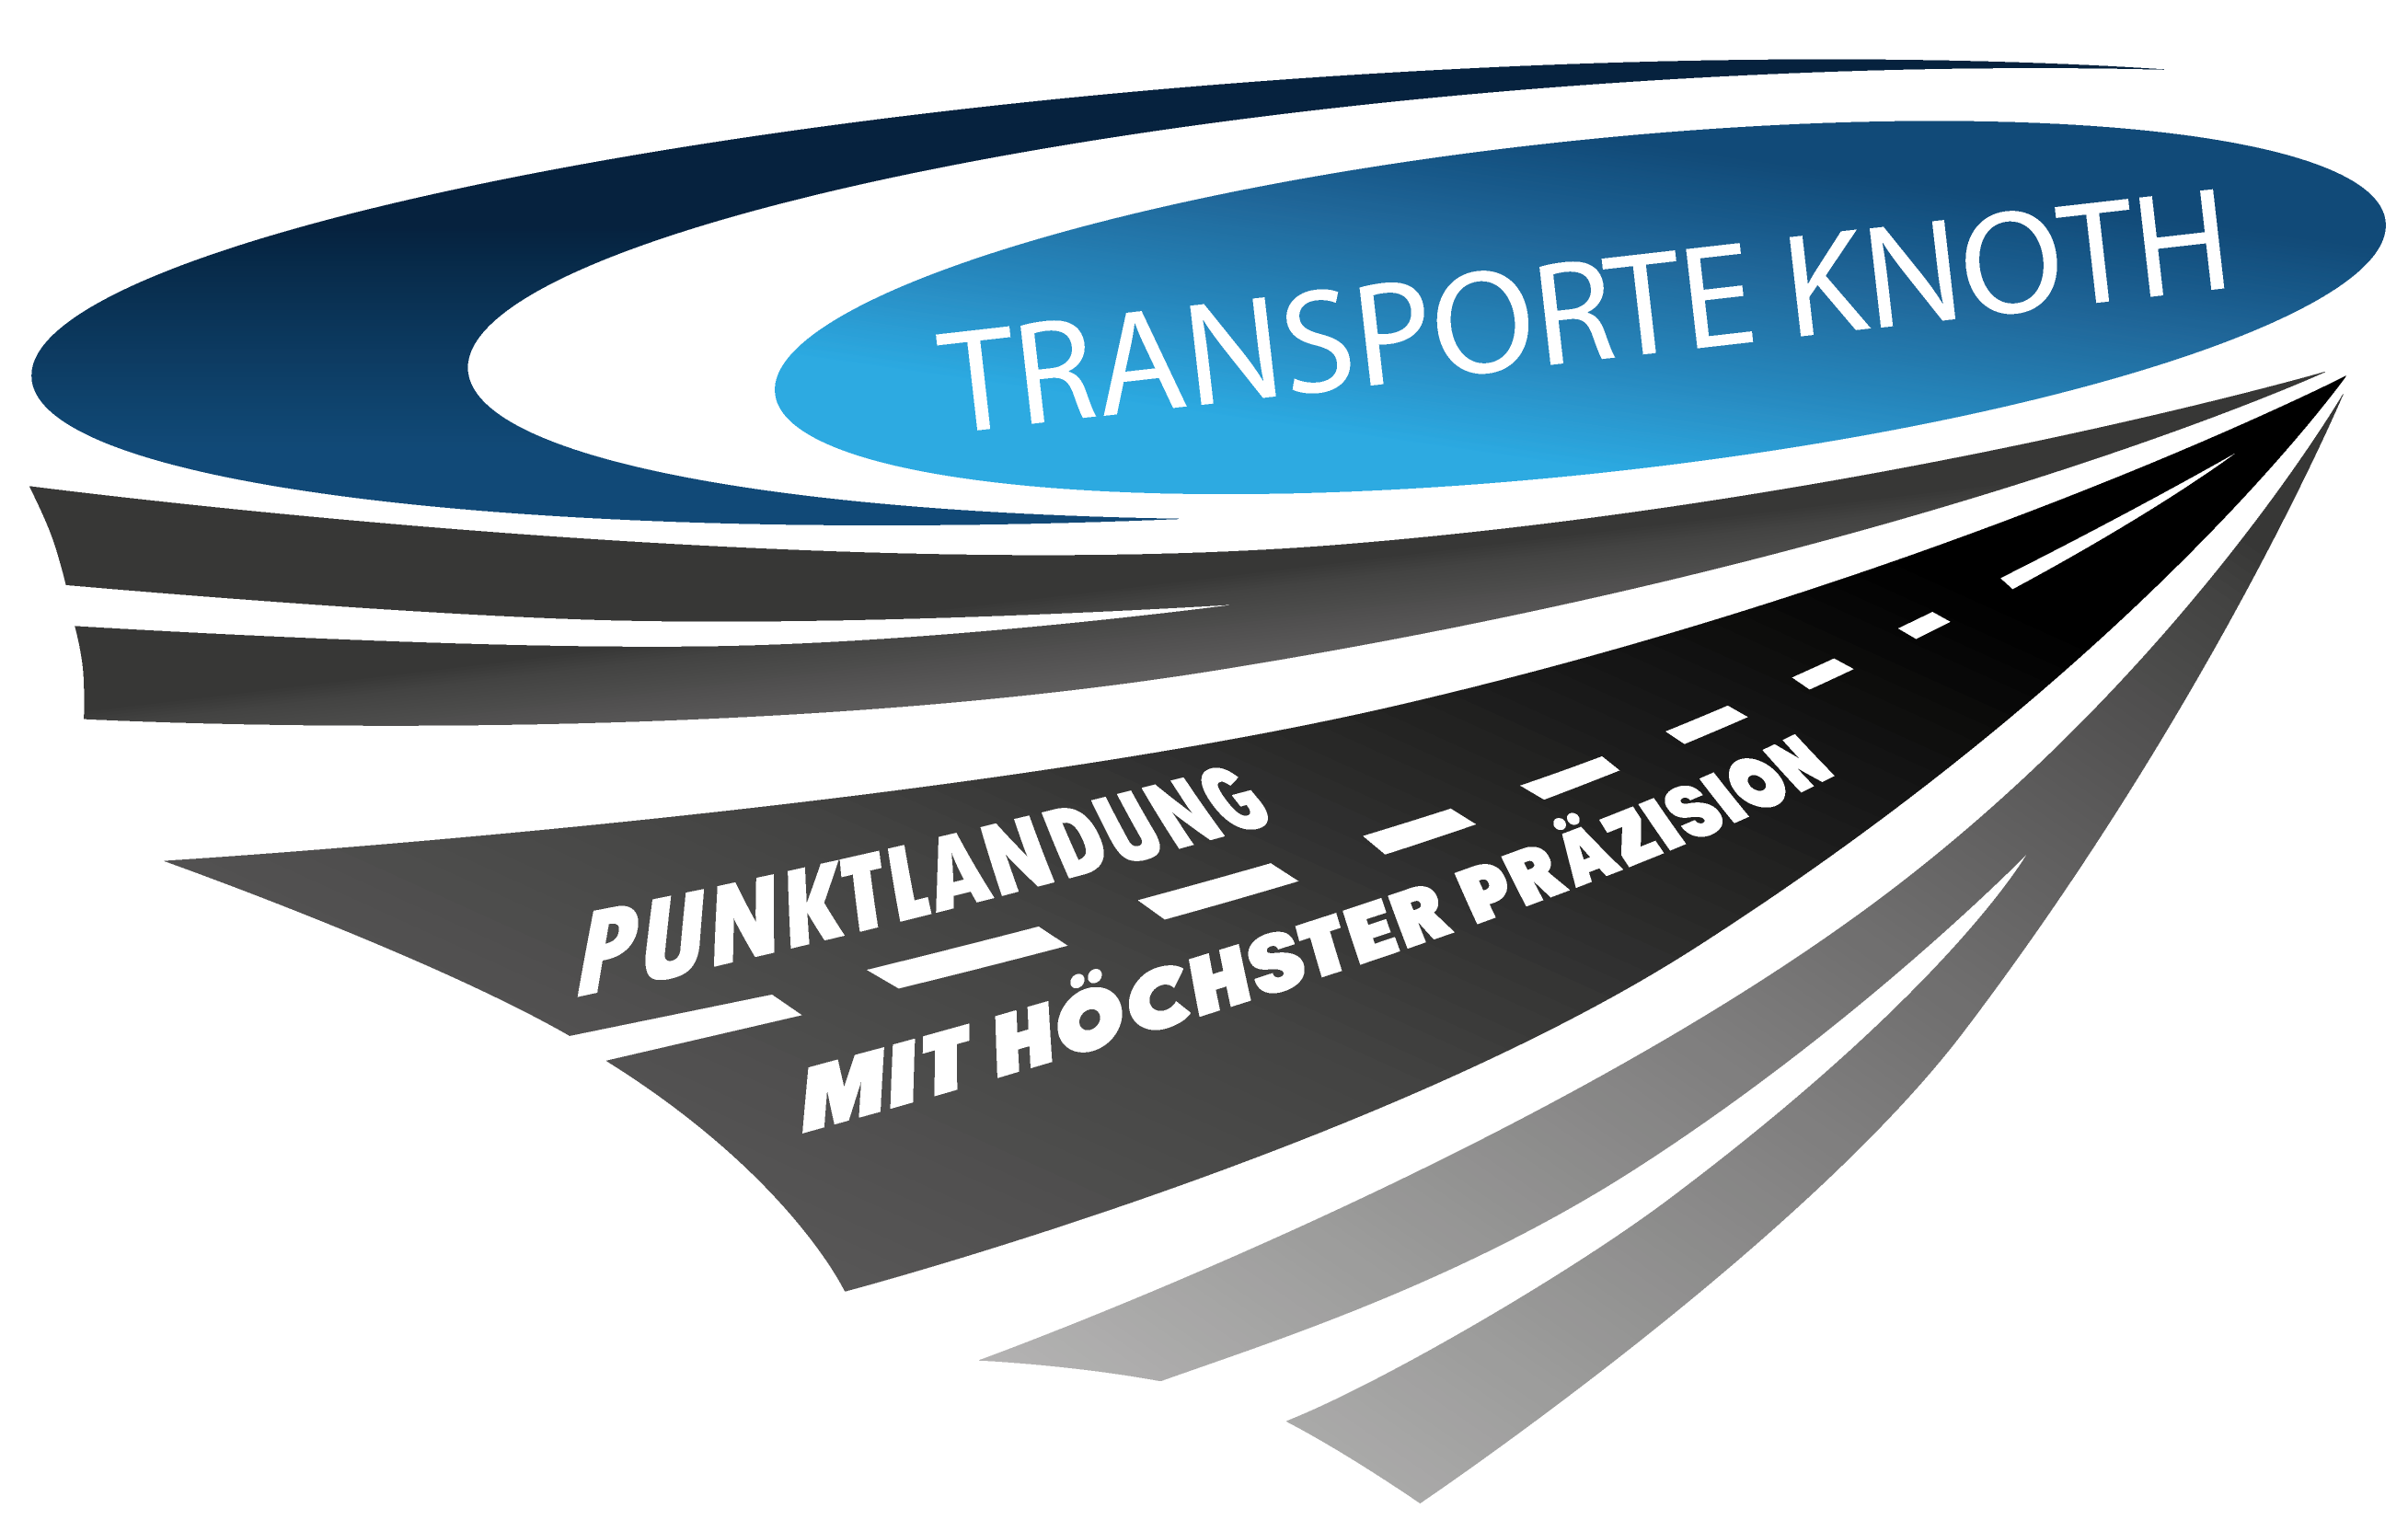 Transport Knoth leipzig Logo